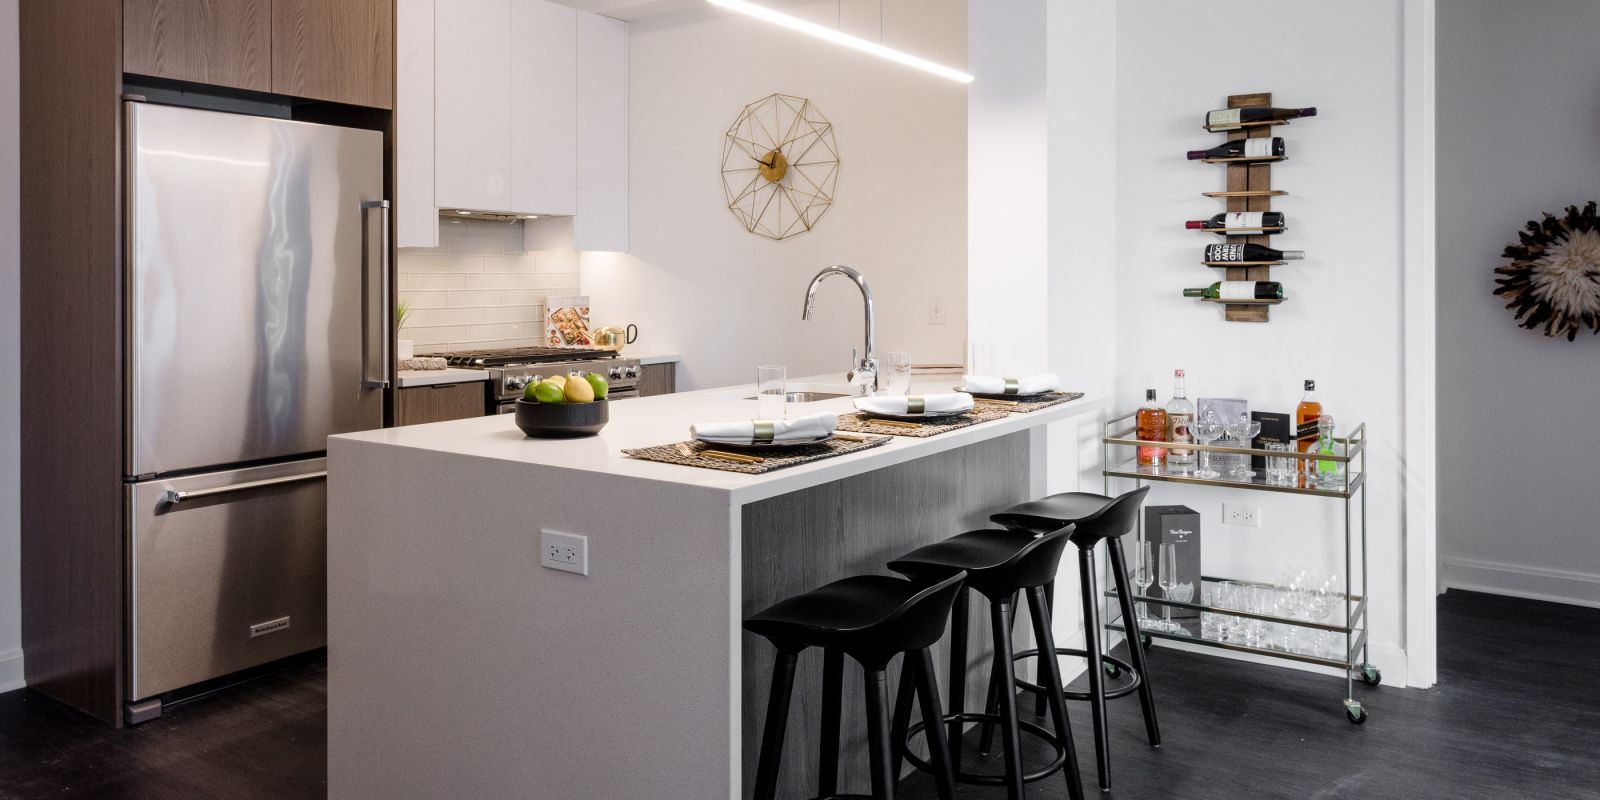 Looking for luxury apartments for rent near Lincoln Park in downtown Chicago?